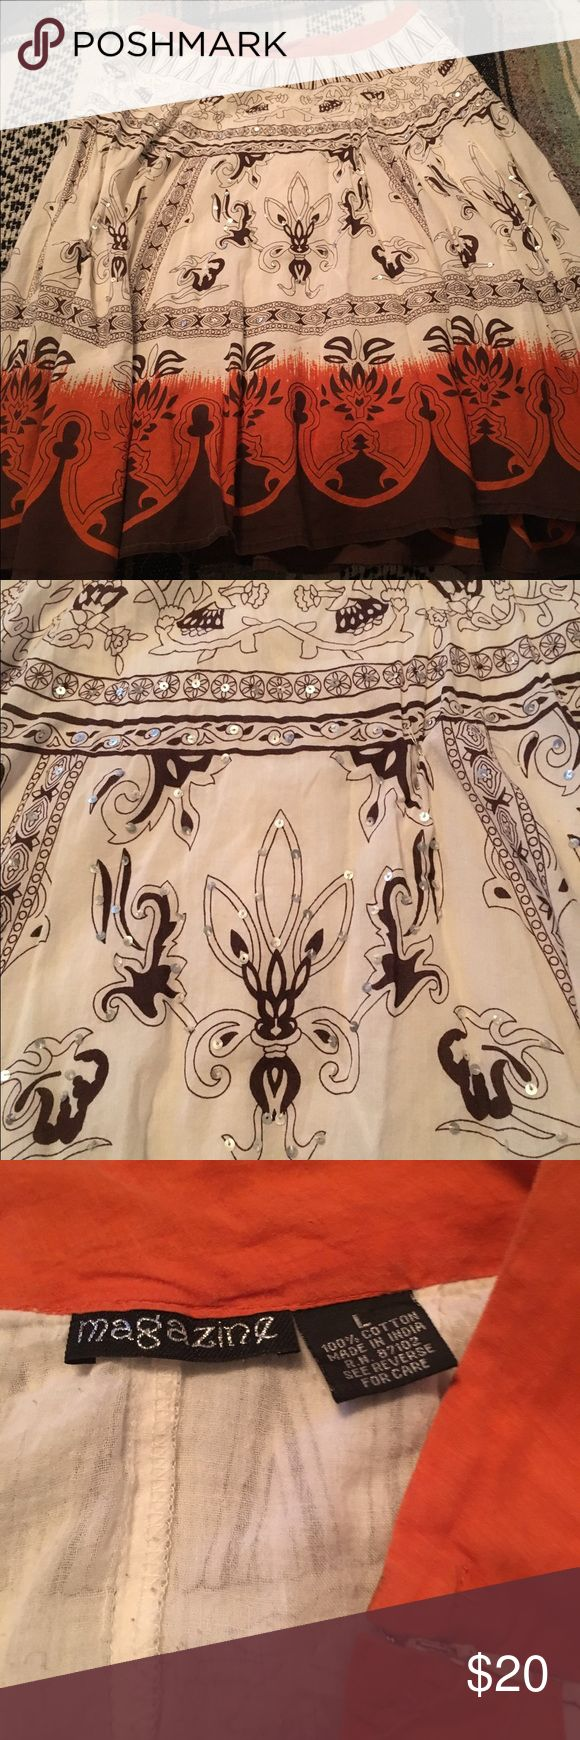 Boho festival skirt! Adorable skirt! Tan with brown print and an orange waist. It has sequins and a zippered side. So cute worn to farmers market or any festival. Size is large but I think it would fit a medium better. Hits me right below the knee but would go to the knee or on someone taller. I'm 5'1 for reference. Magazine  Skirts Midi